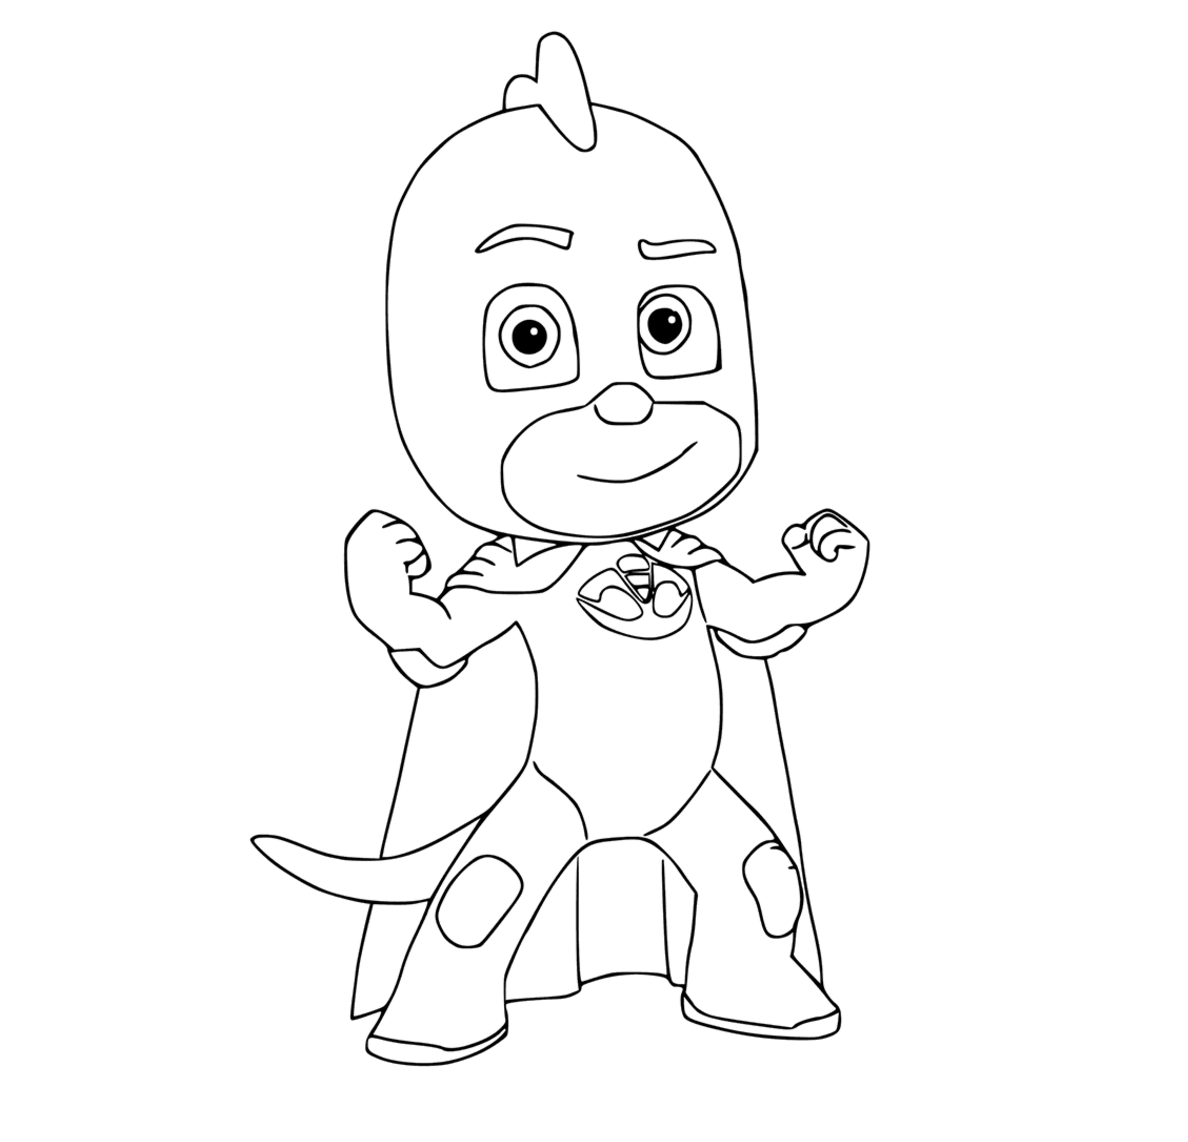 pj masks coloring pages to download and print for free jj s 3rd pj